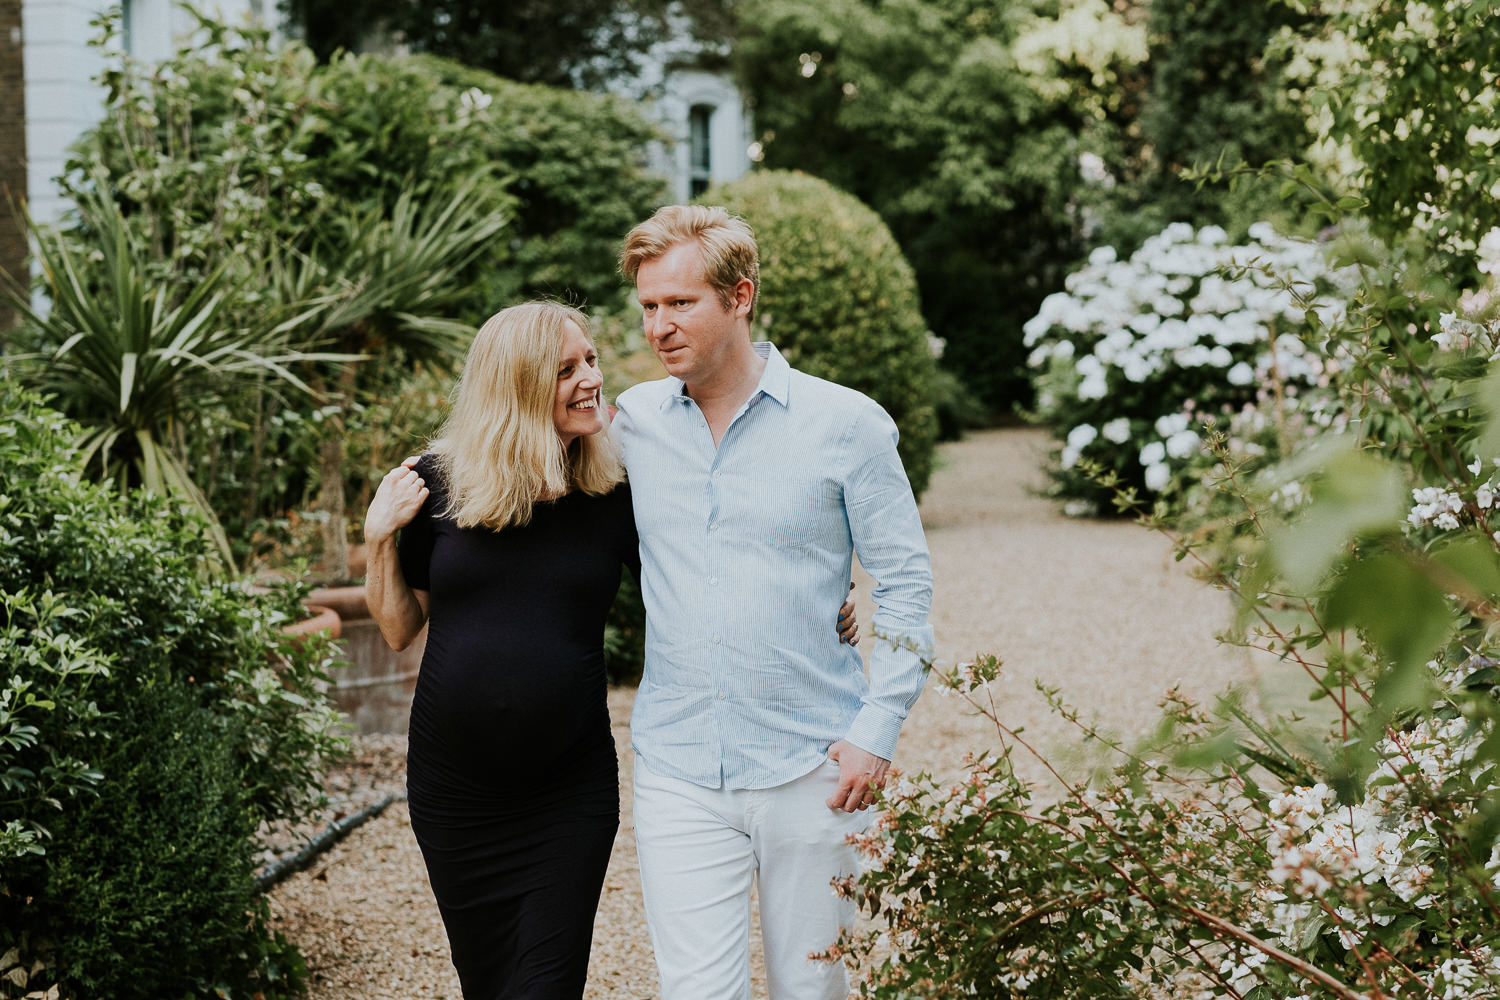 LONDON MATERNITY PHOTO SHOOT pregnant woman and husband walking in garden with flowers